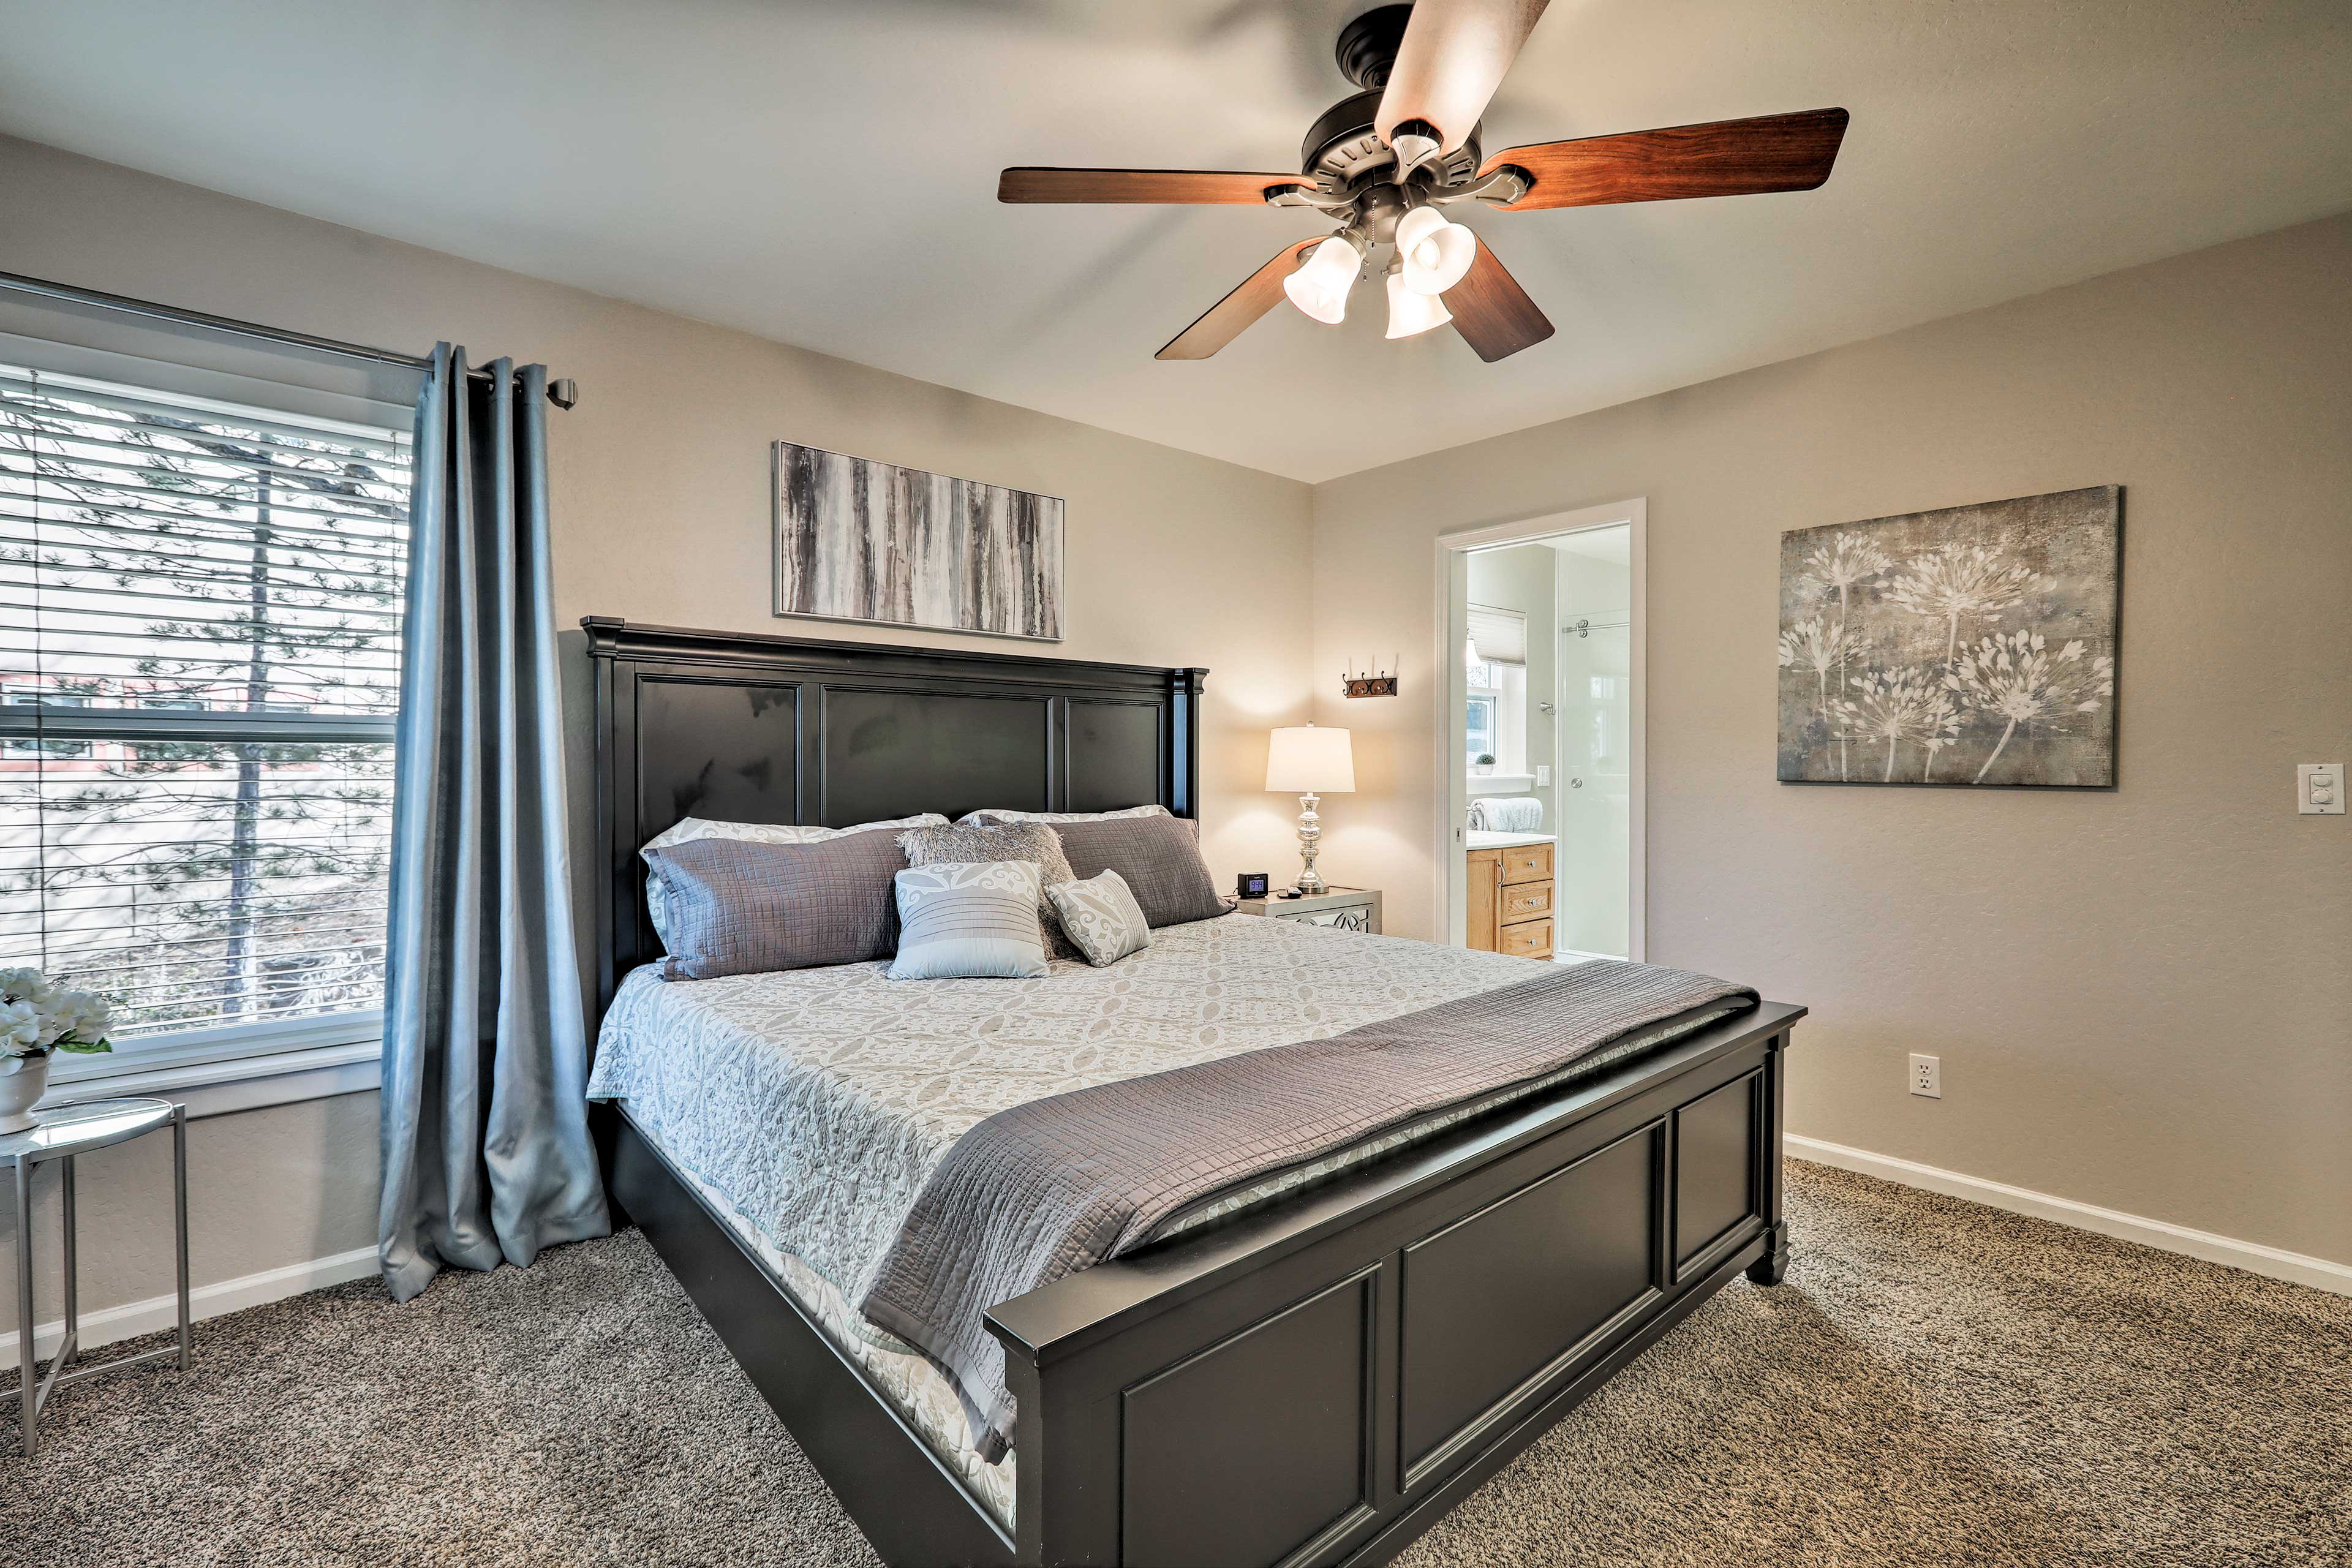 This second master bedroom features a king bed and full en-suite bathroom.